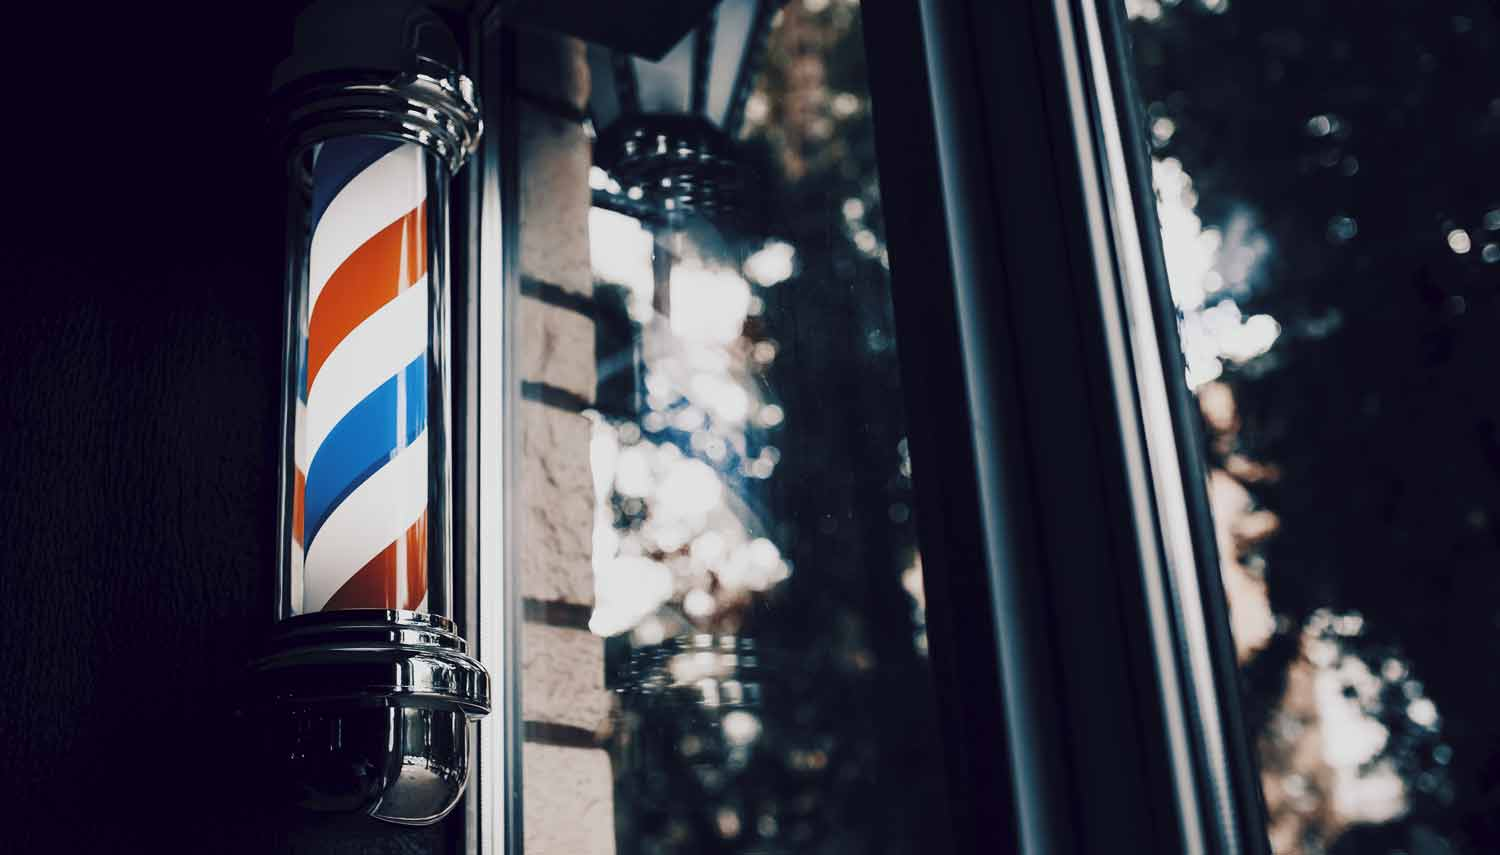 The Barbershop Pole